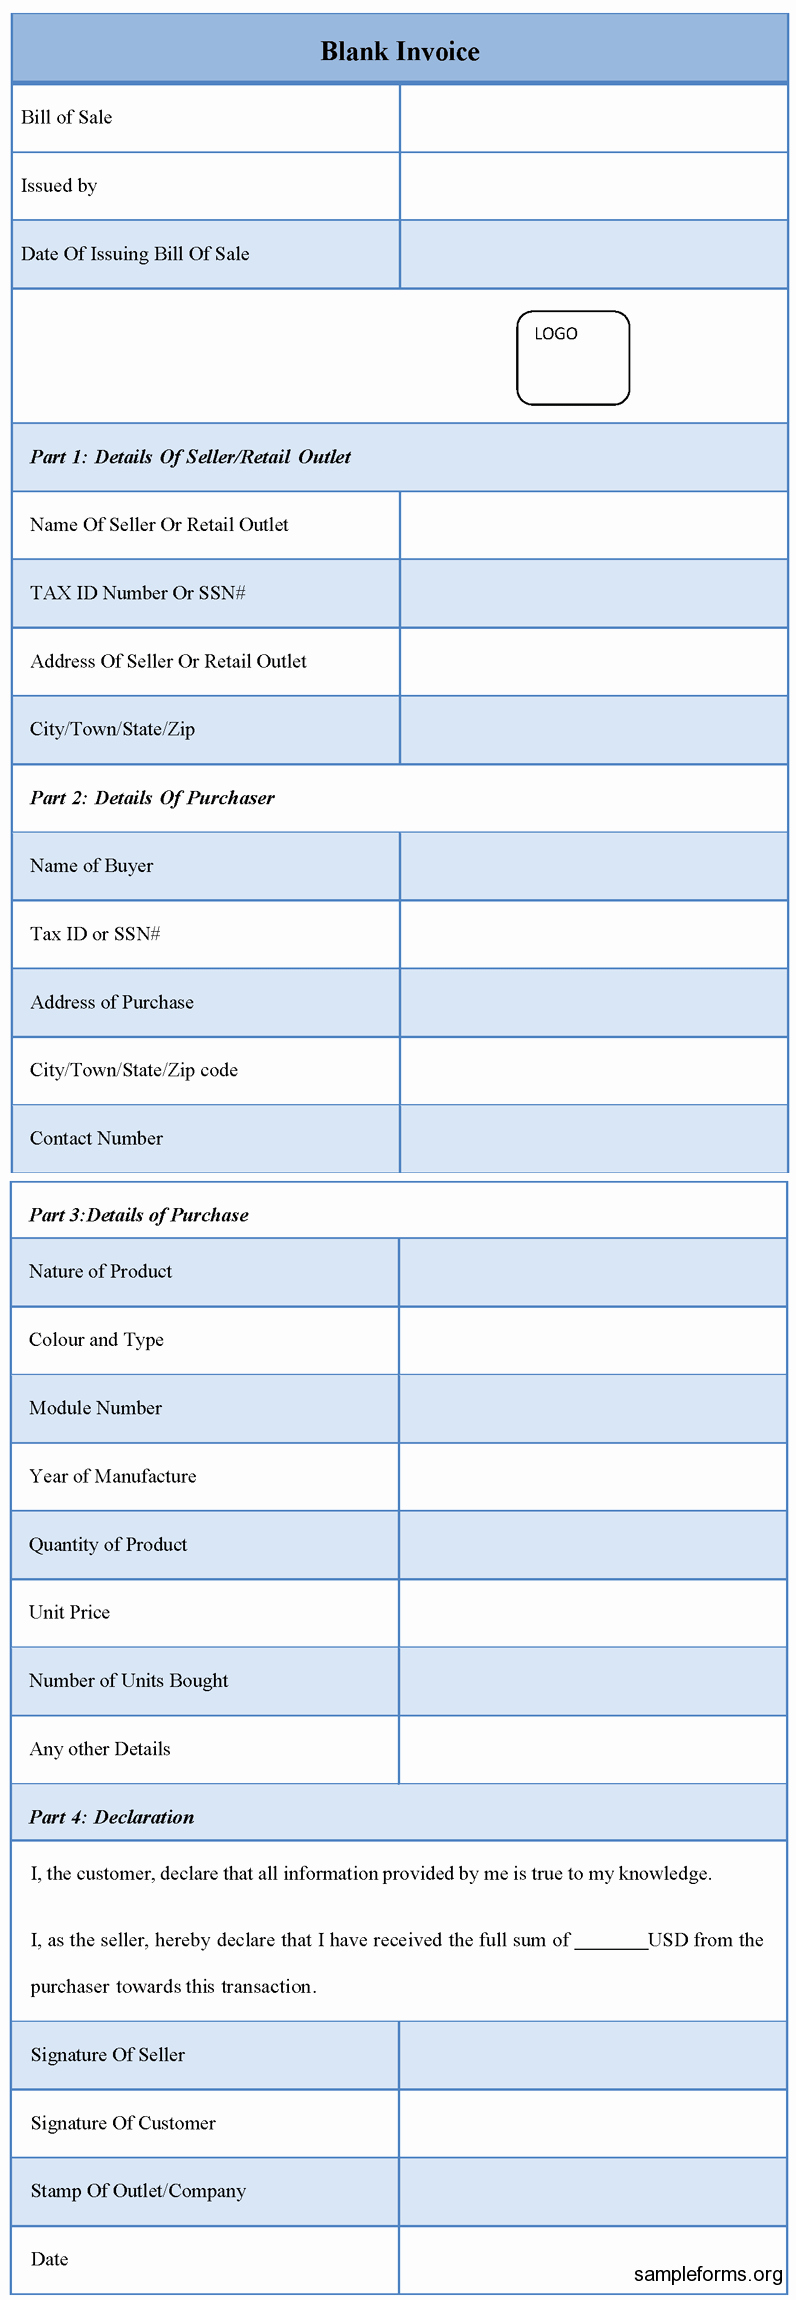 Blank P&l form Lovely Blank Invoice form Sample forms